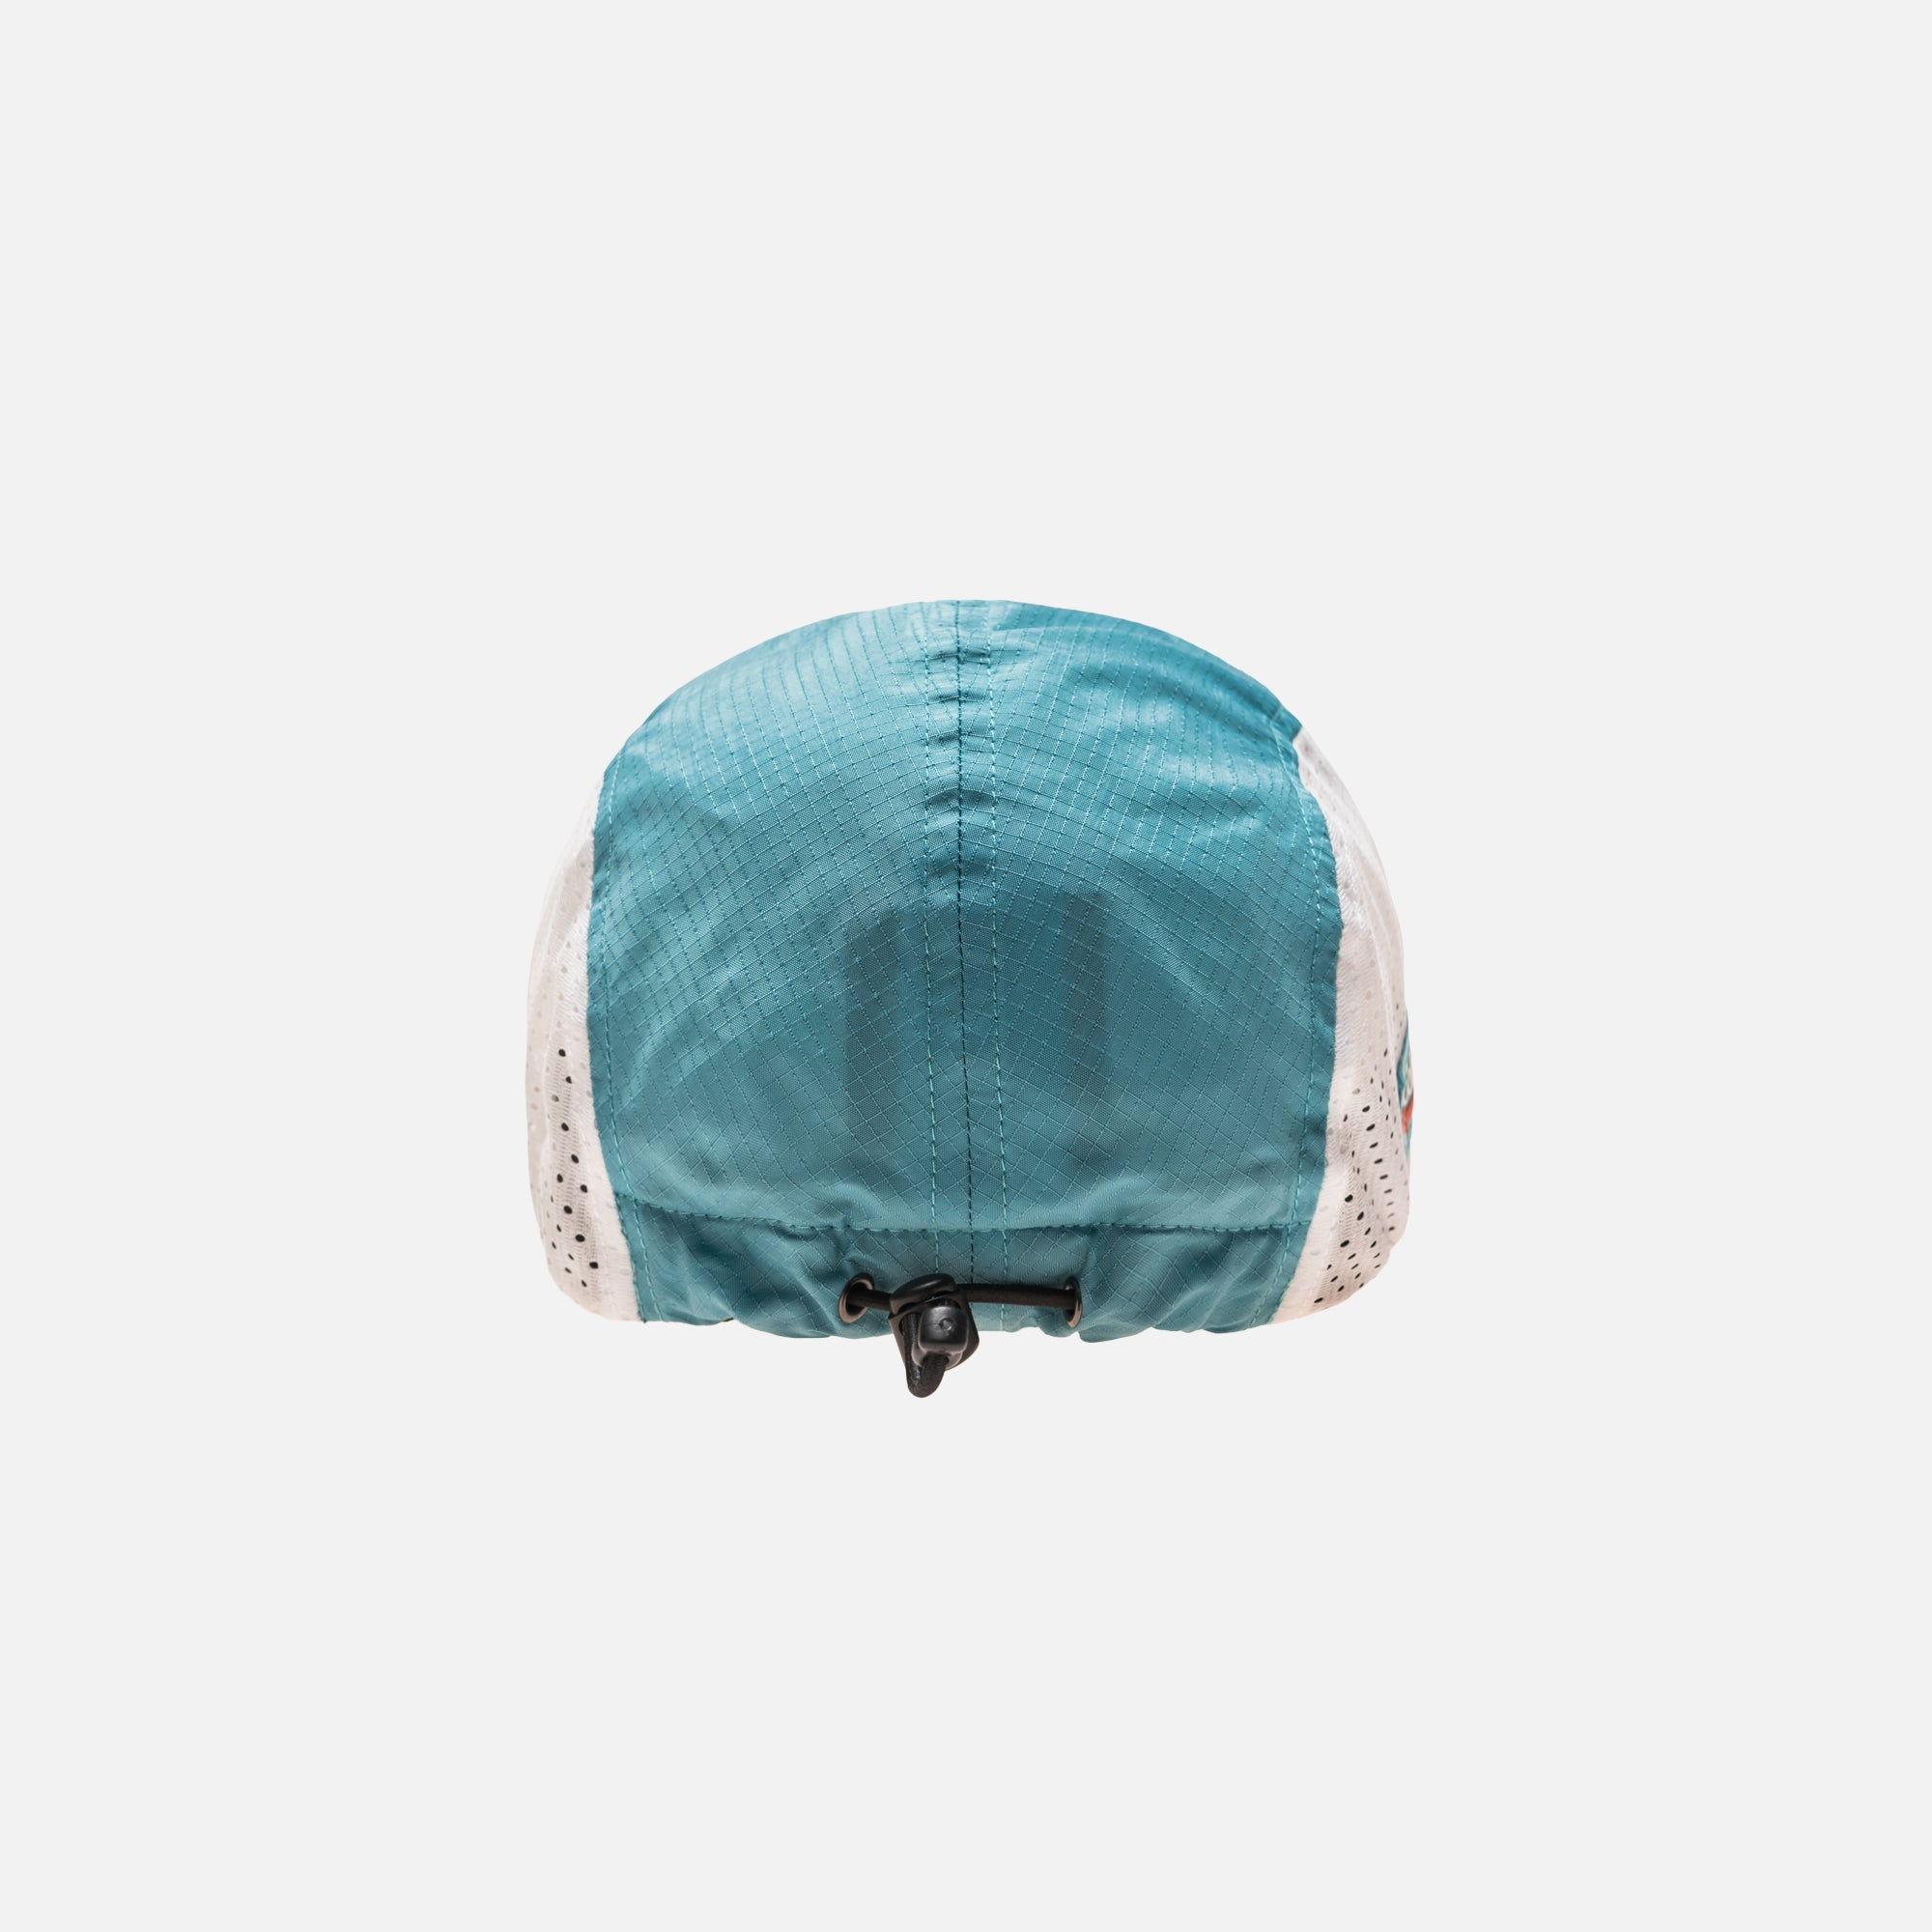 Kith x Columbia Shredder Cap - Teal